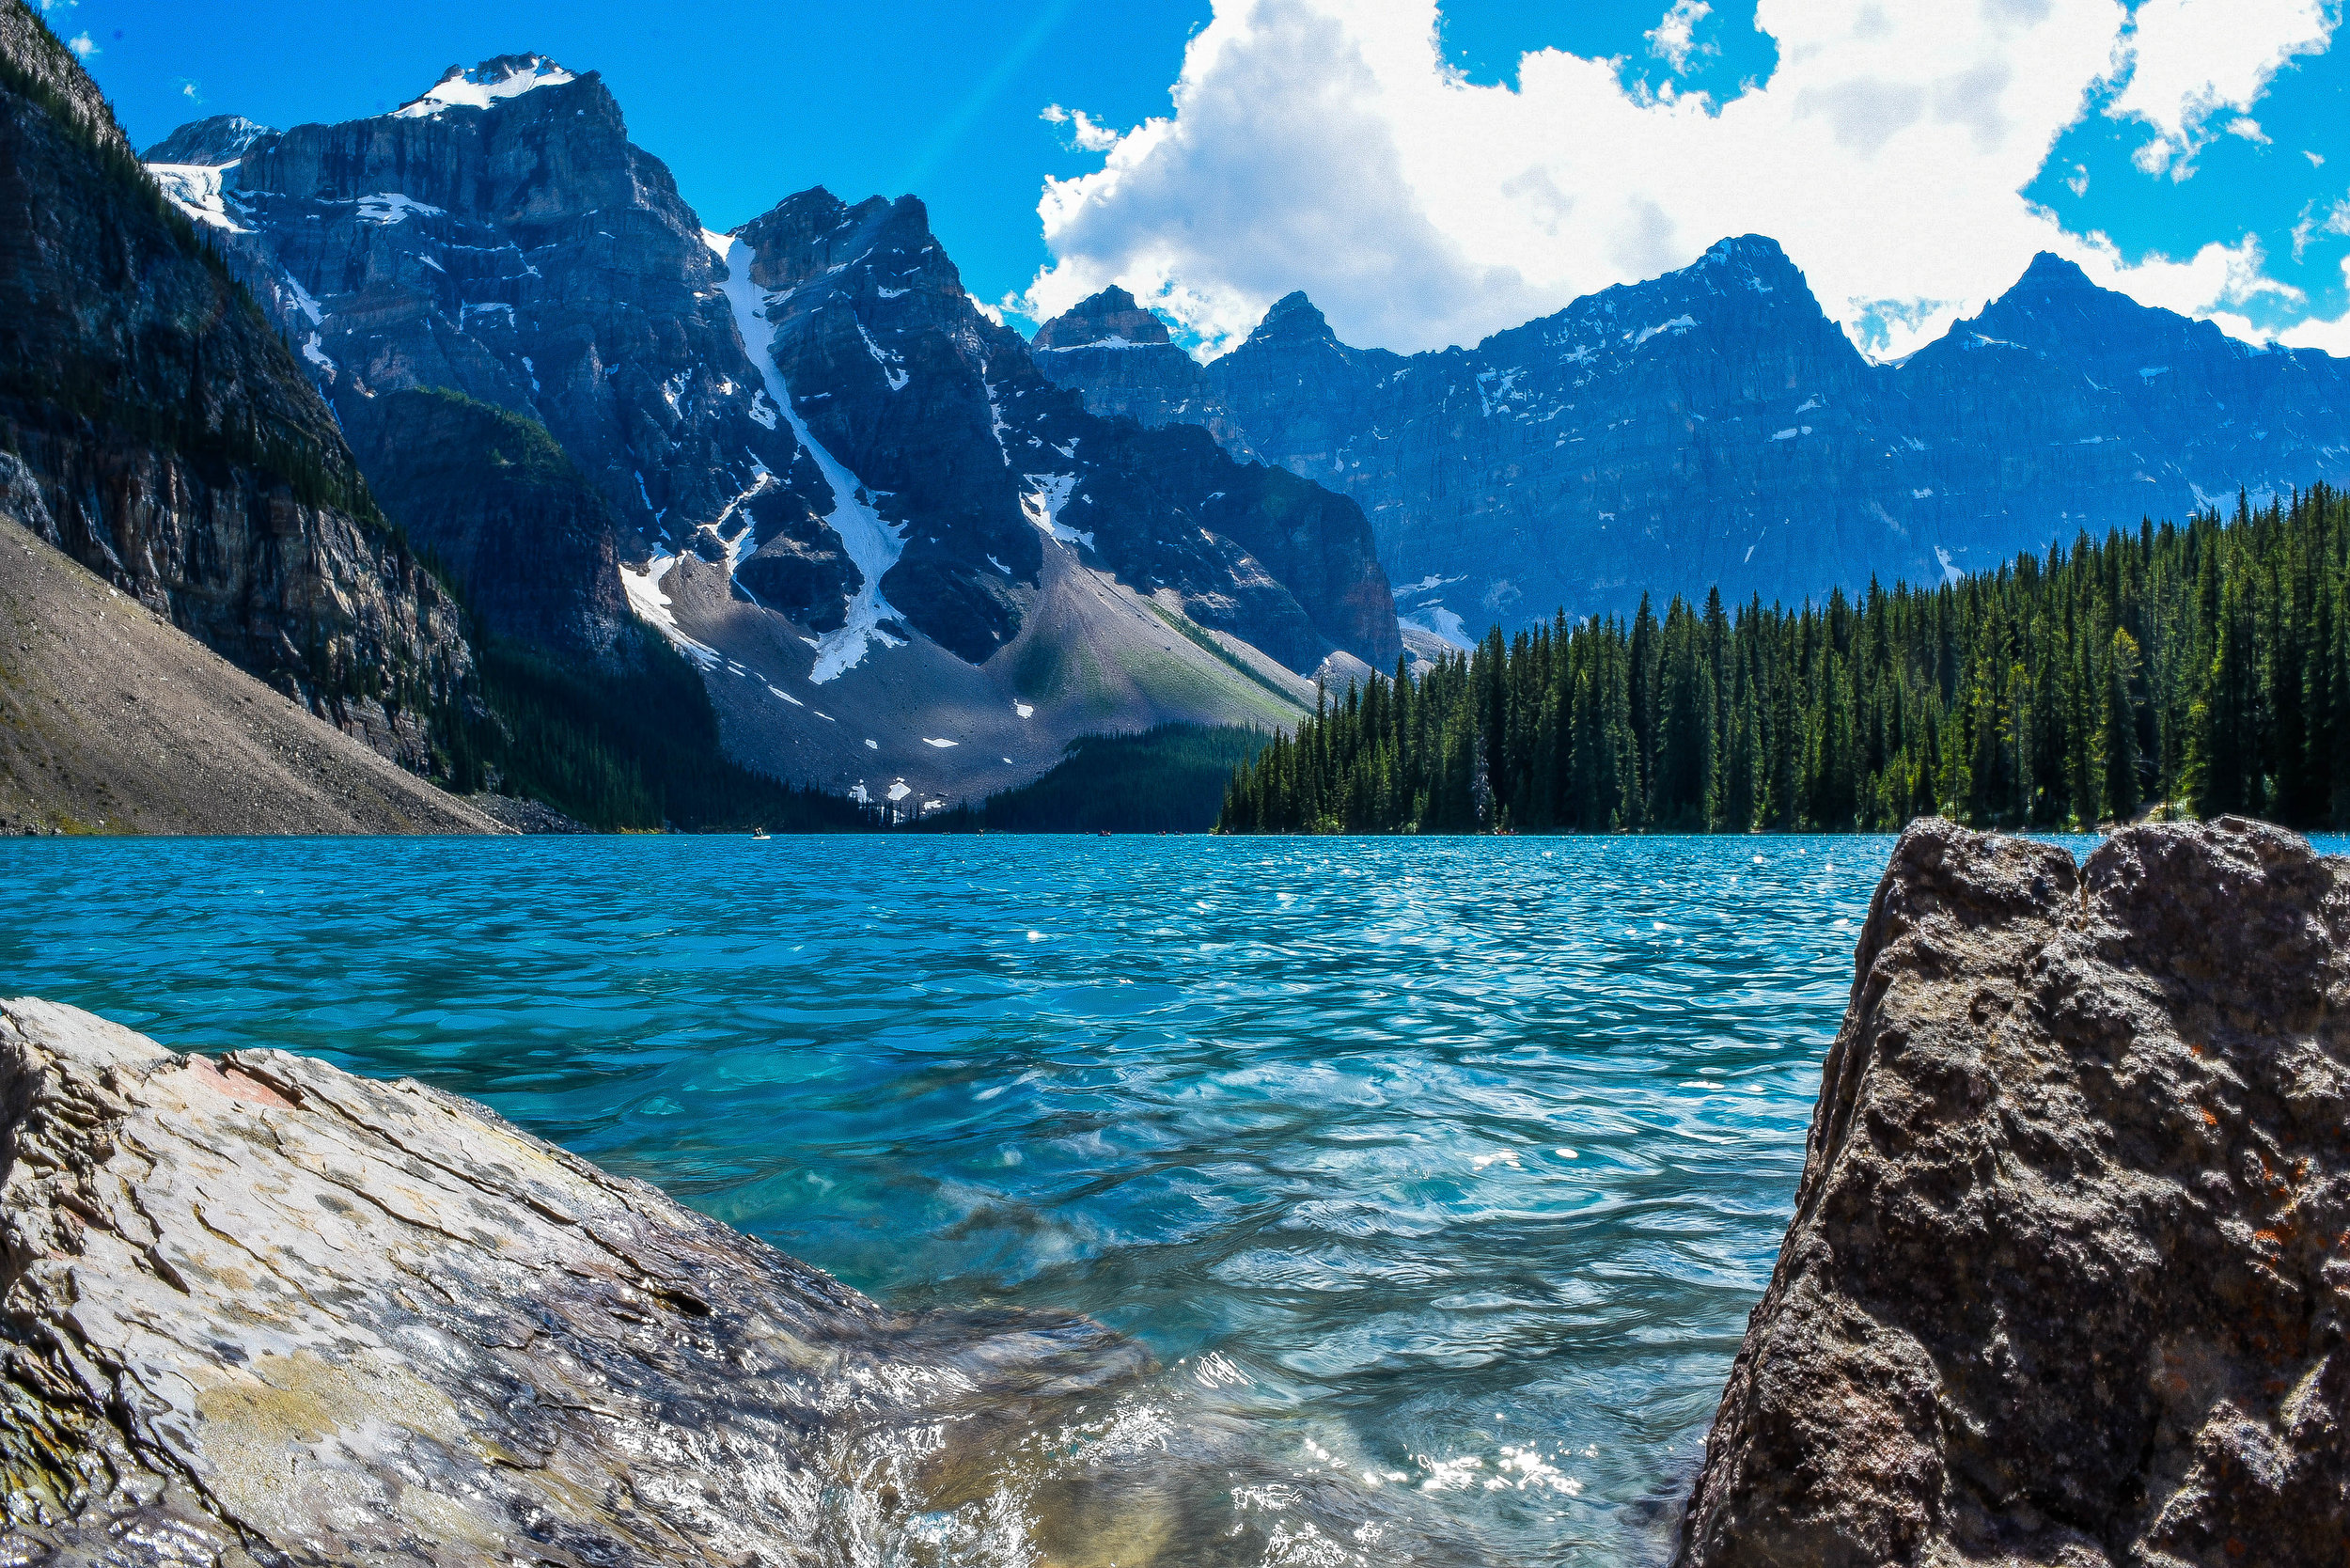 Sunlight bathes the turquoise waters of Banff's Moraine Lake.